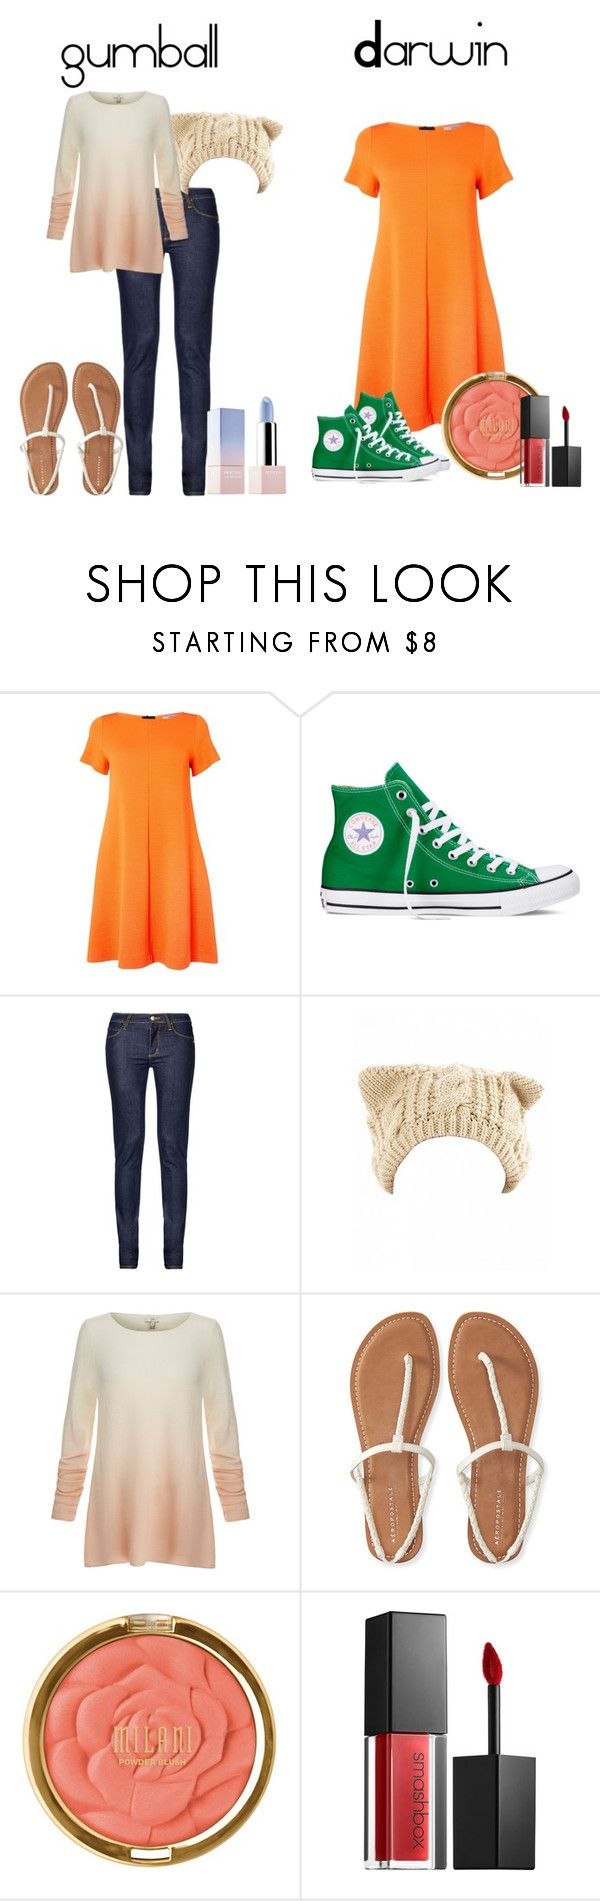 """""""the amazing world of gumball"""" by tokyo-mocha ❤ liked on Polyvore featuring Marella, Converse, Monkee Genes, Joie, Aéropostale, Milani, Smashbox and Sephora Collection"""